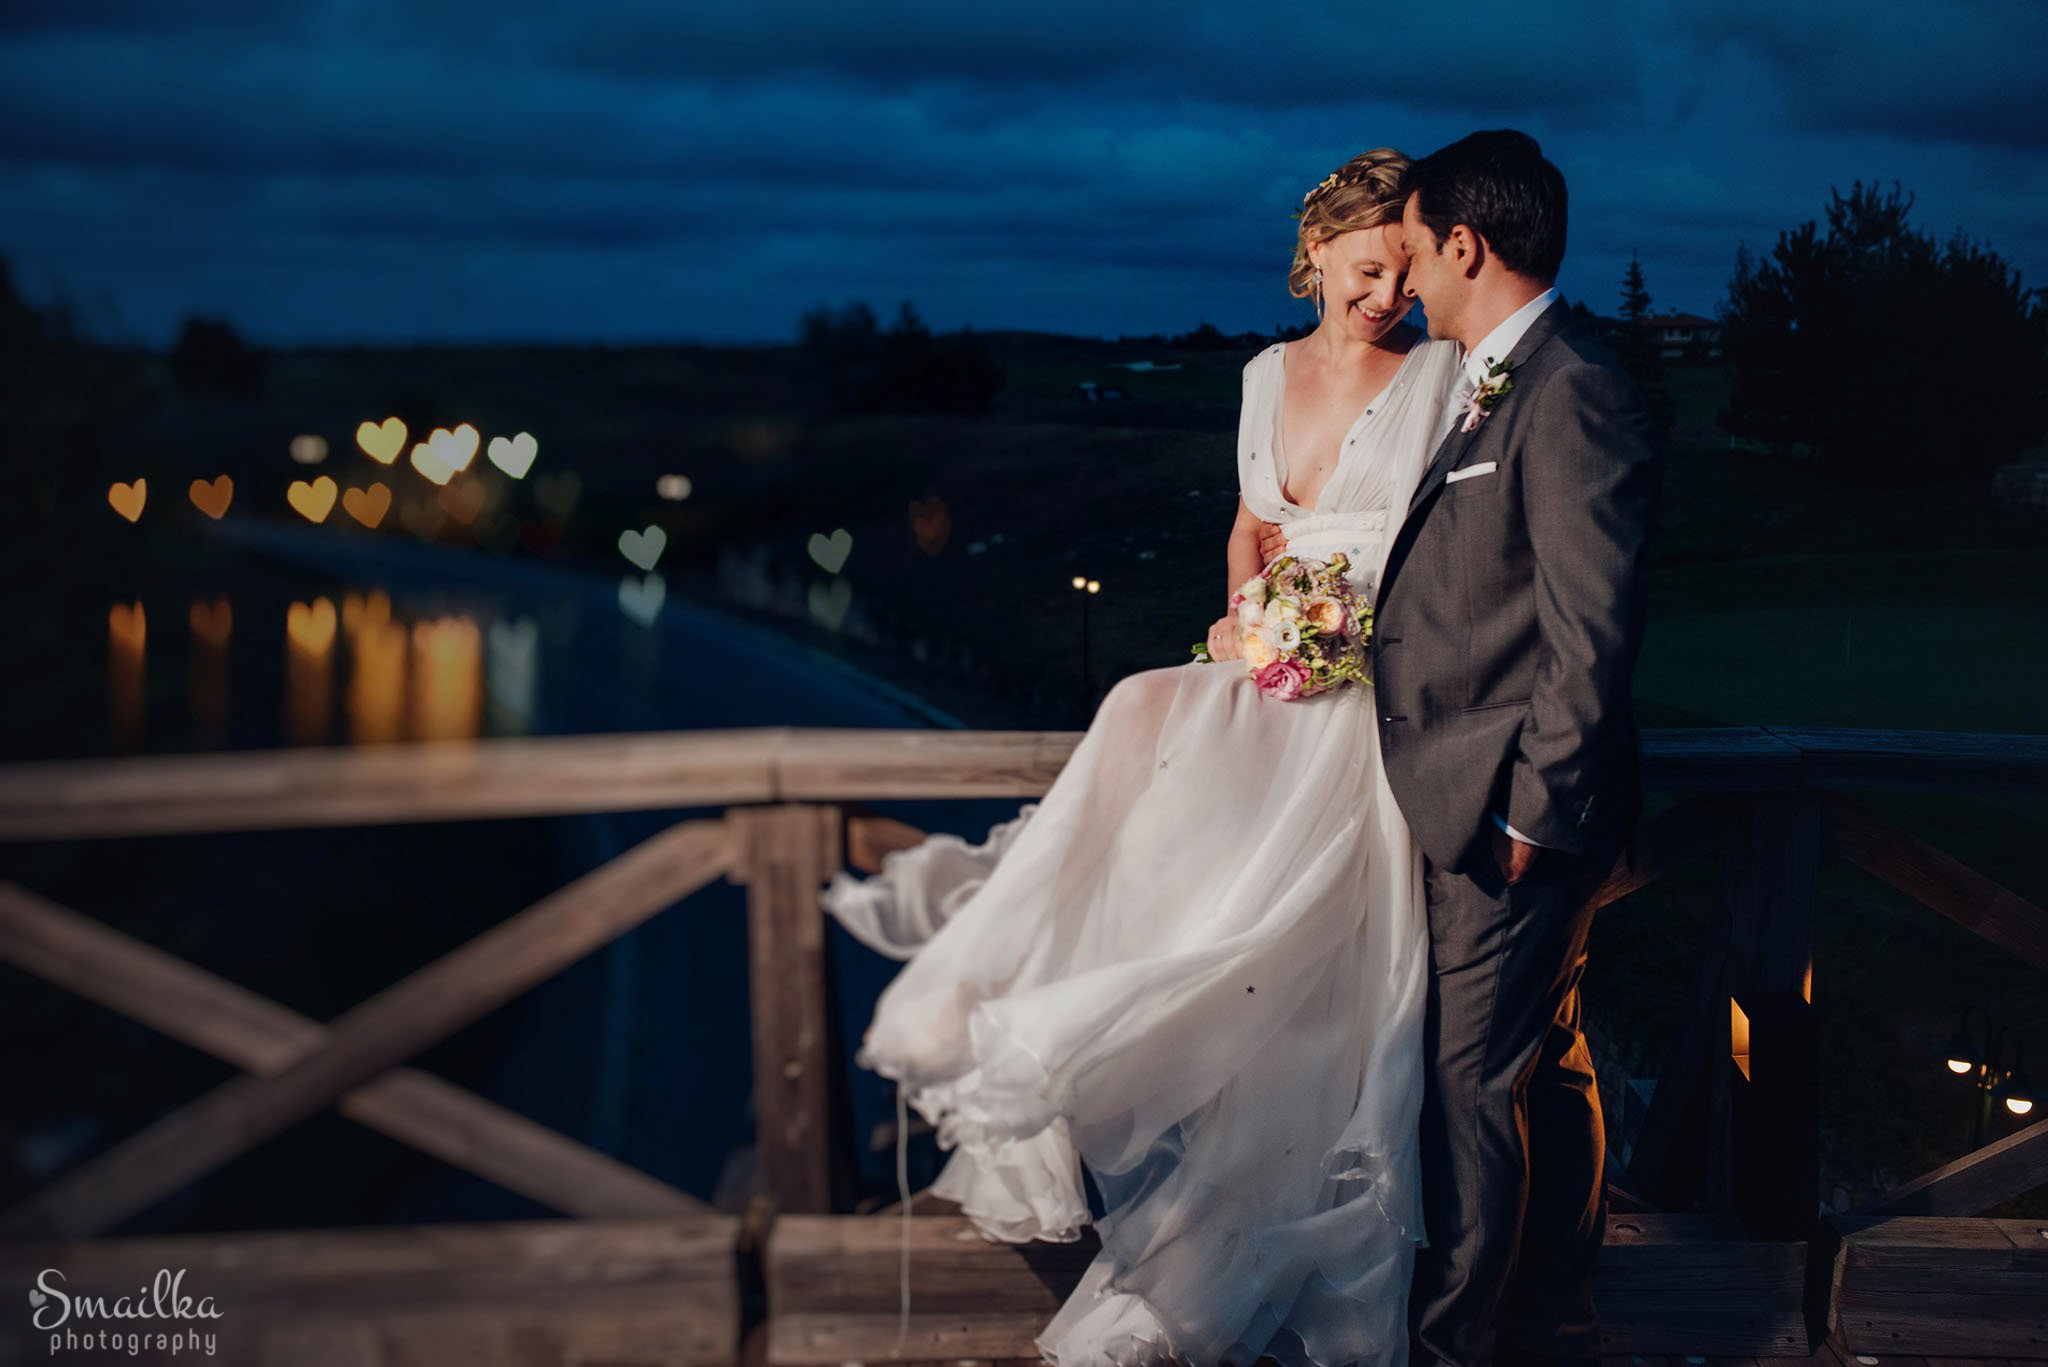 Wedding couple night photography at Black Sea Rama